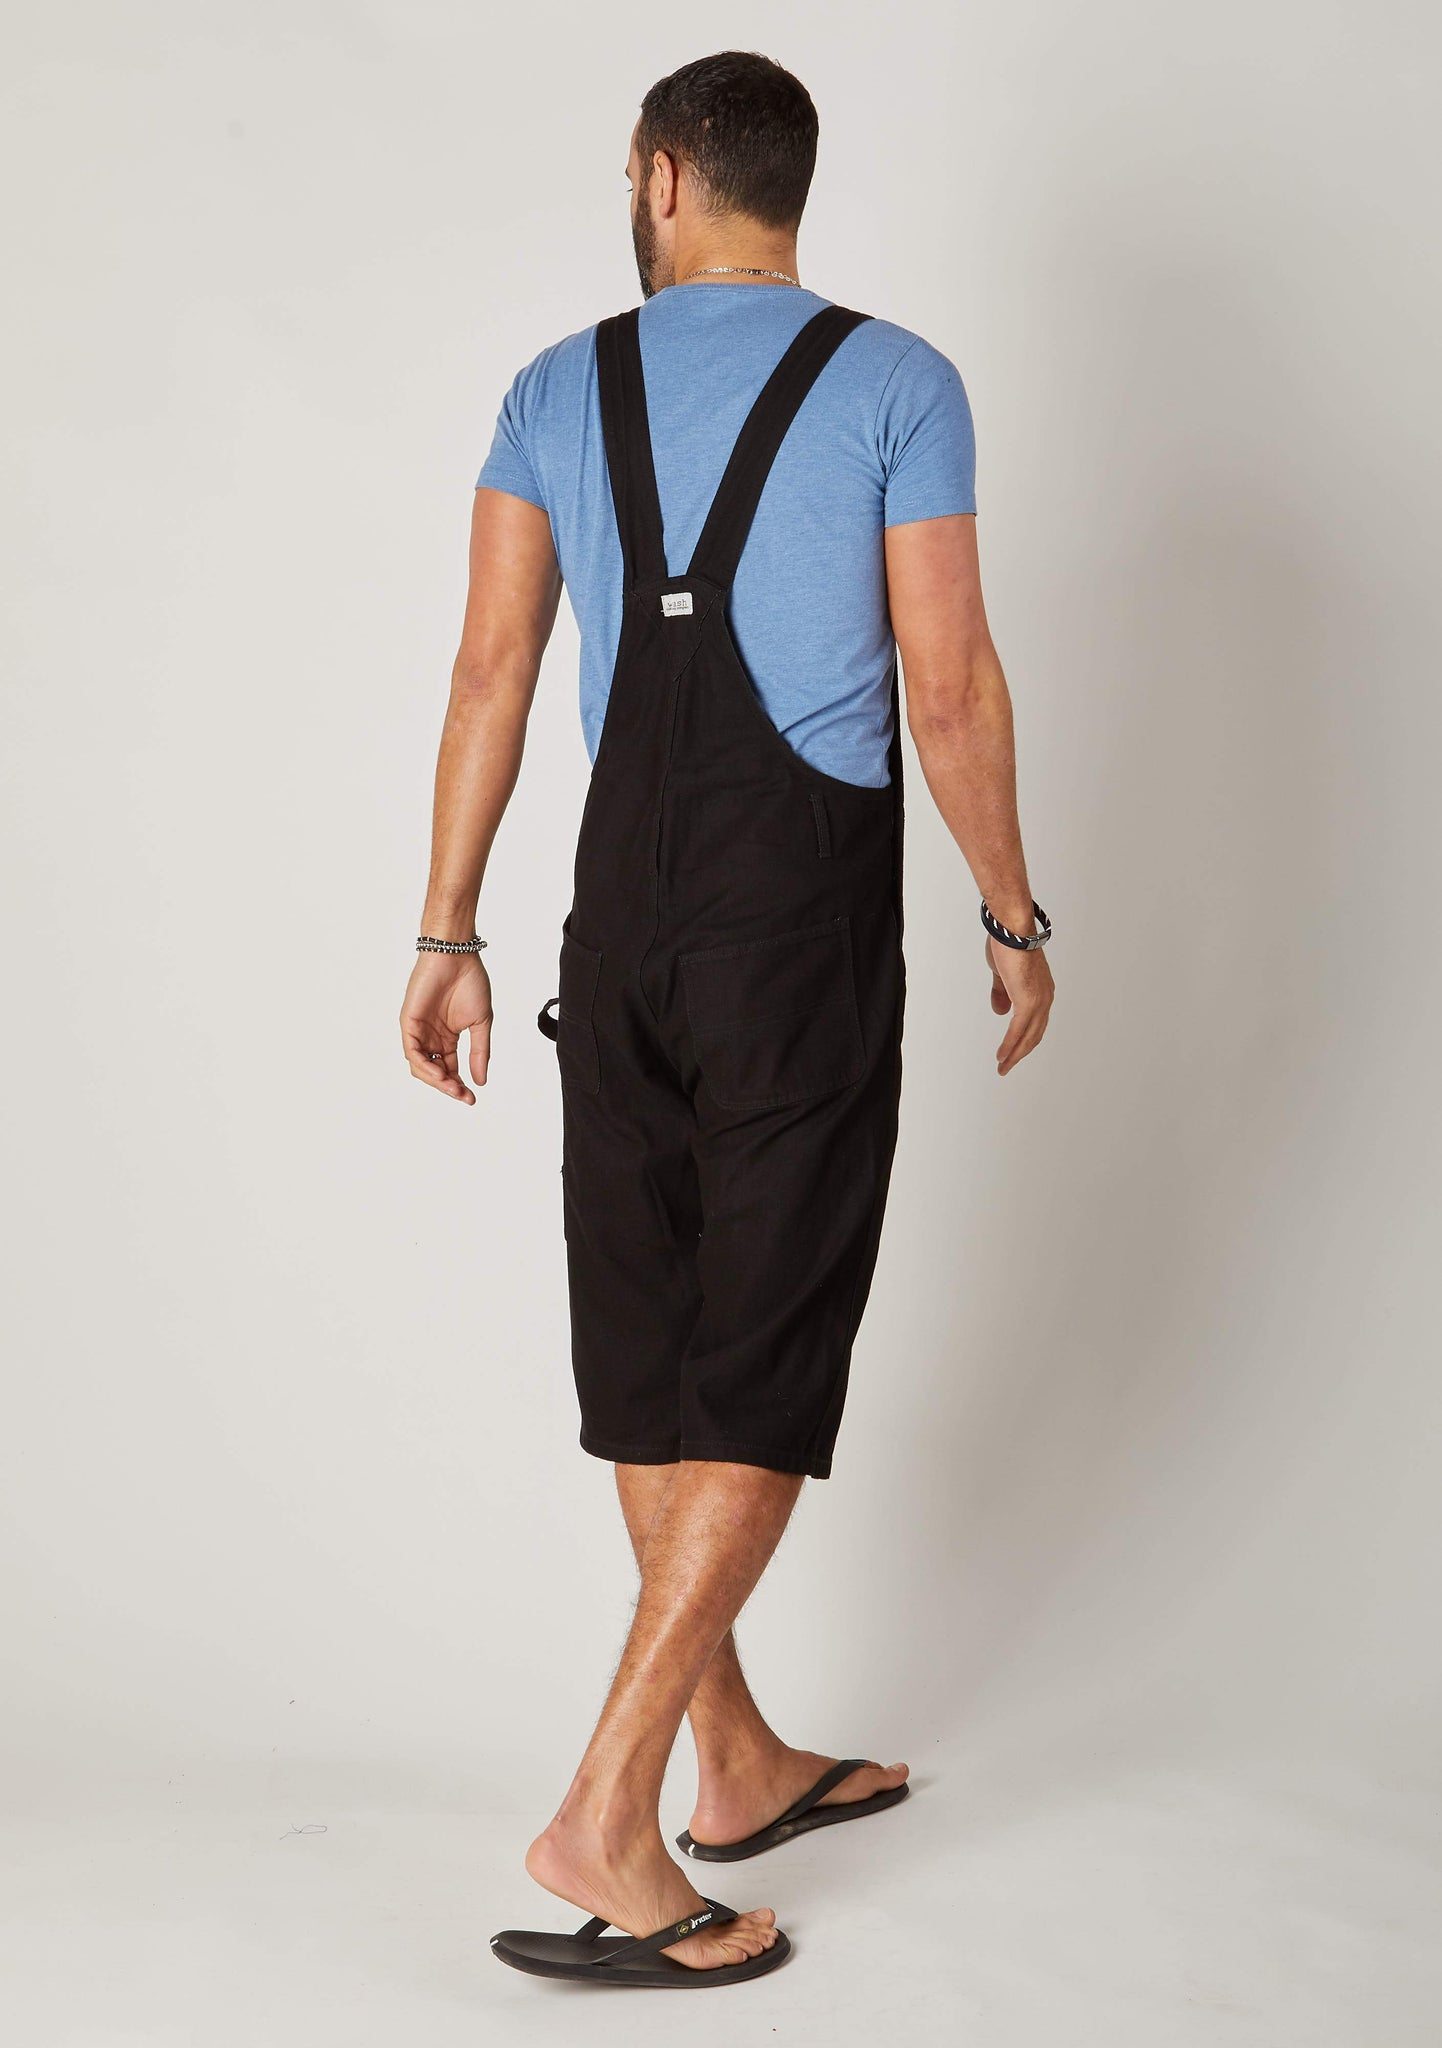 Rear twisted pose wearing 'Blake' brand black bib overalls shorts from Dungarees Online.